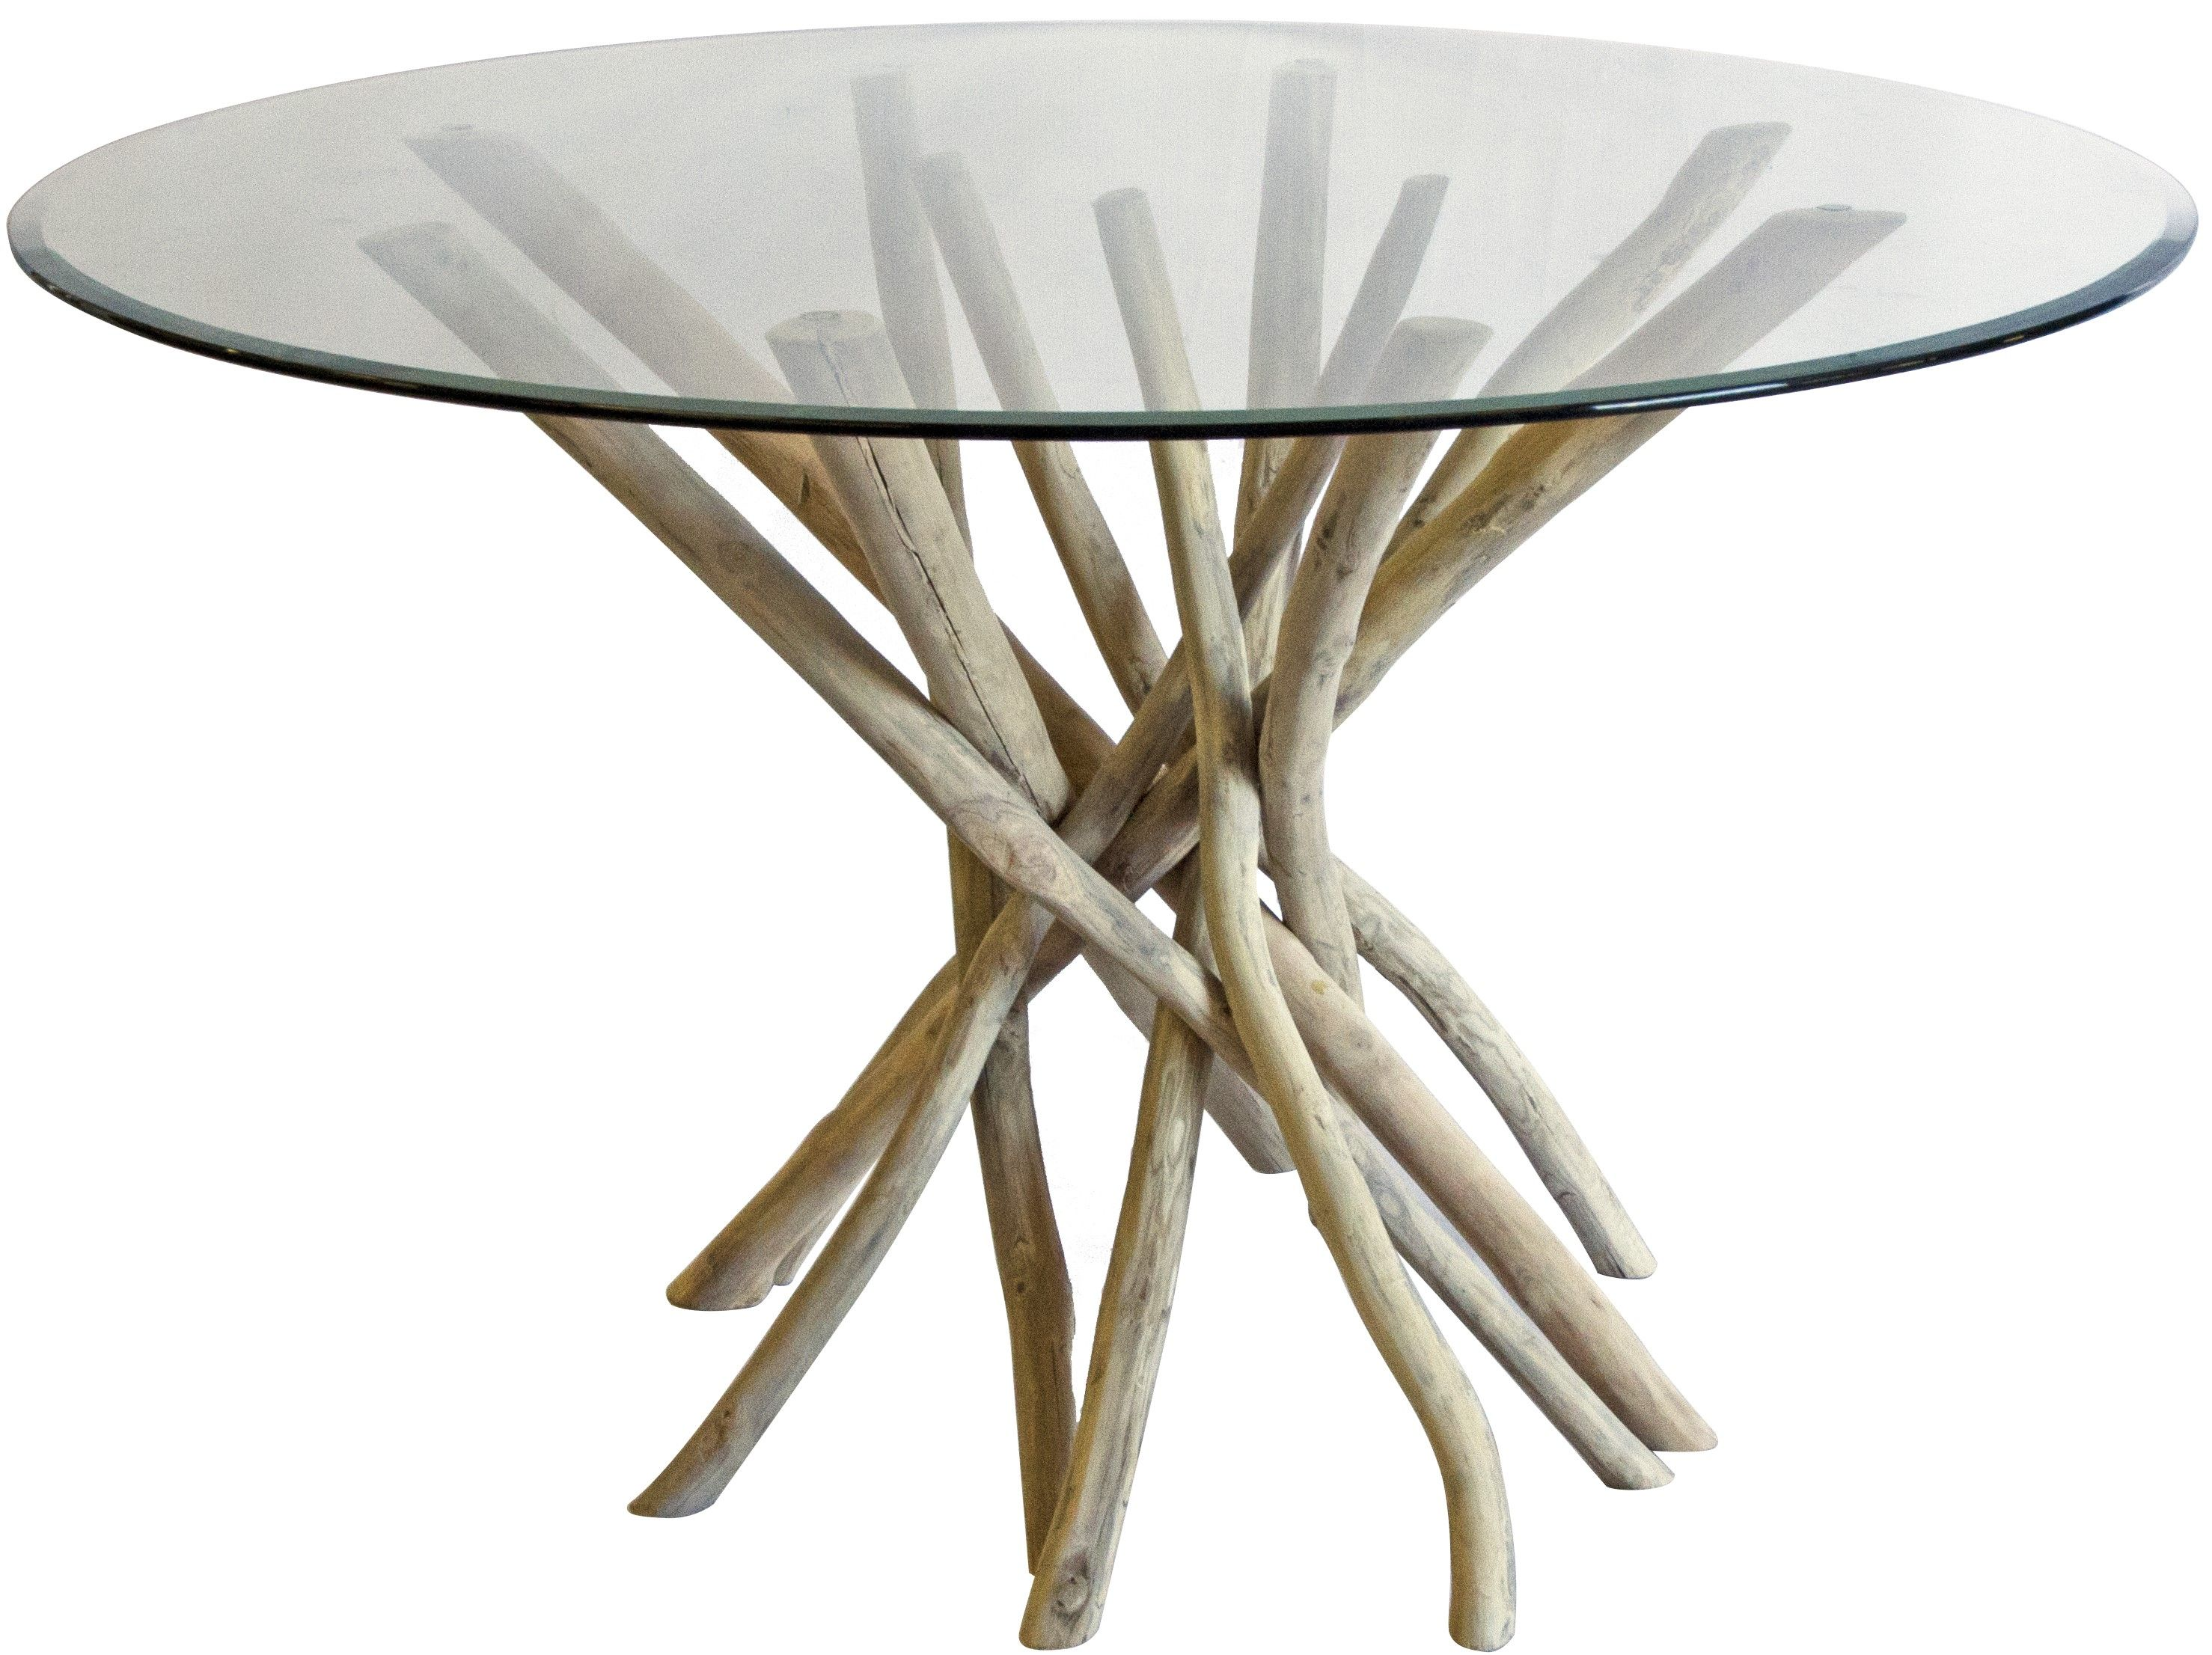 this is a very simple side table which would be pretty easy to make